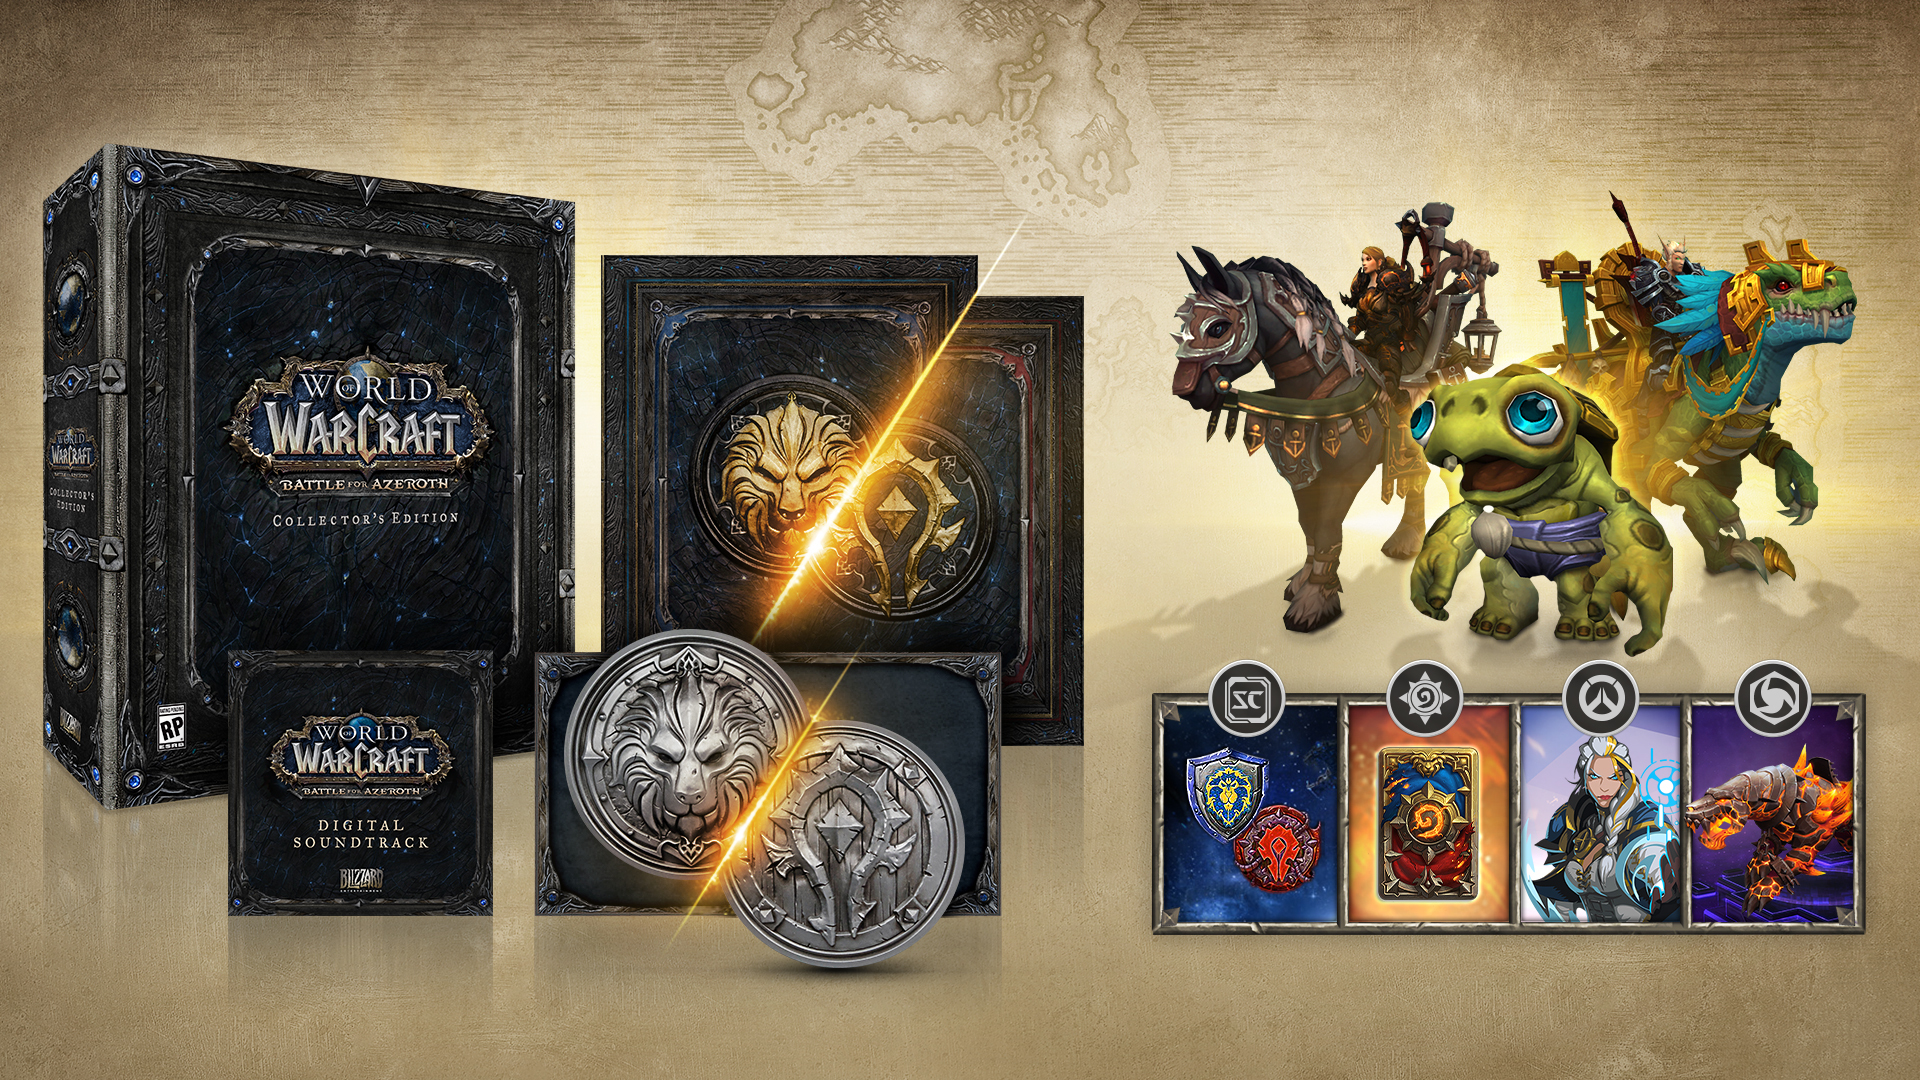 Prepare to Join the Battle for Azeroth™New World of Warcraft